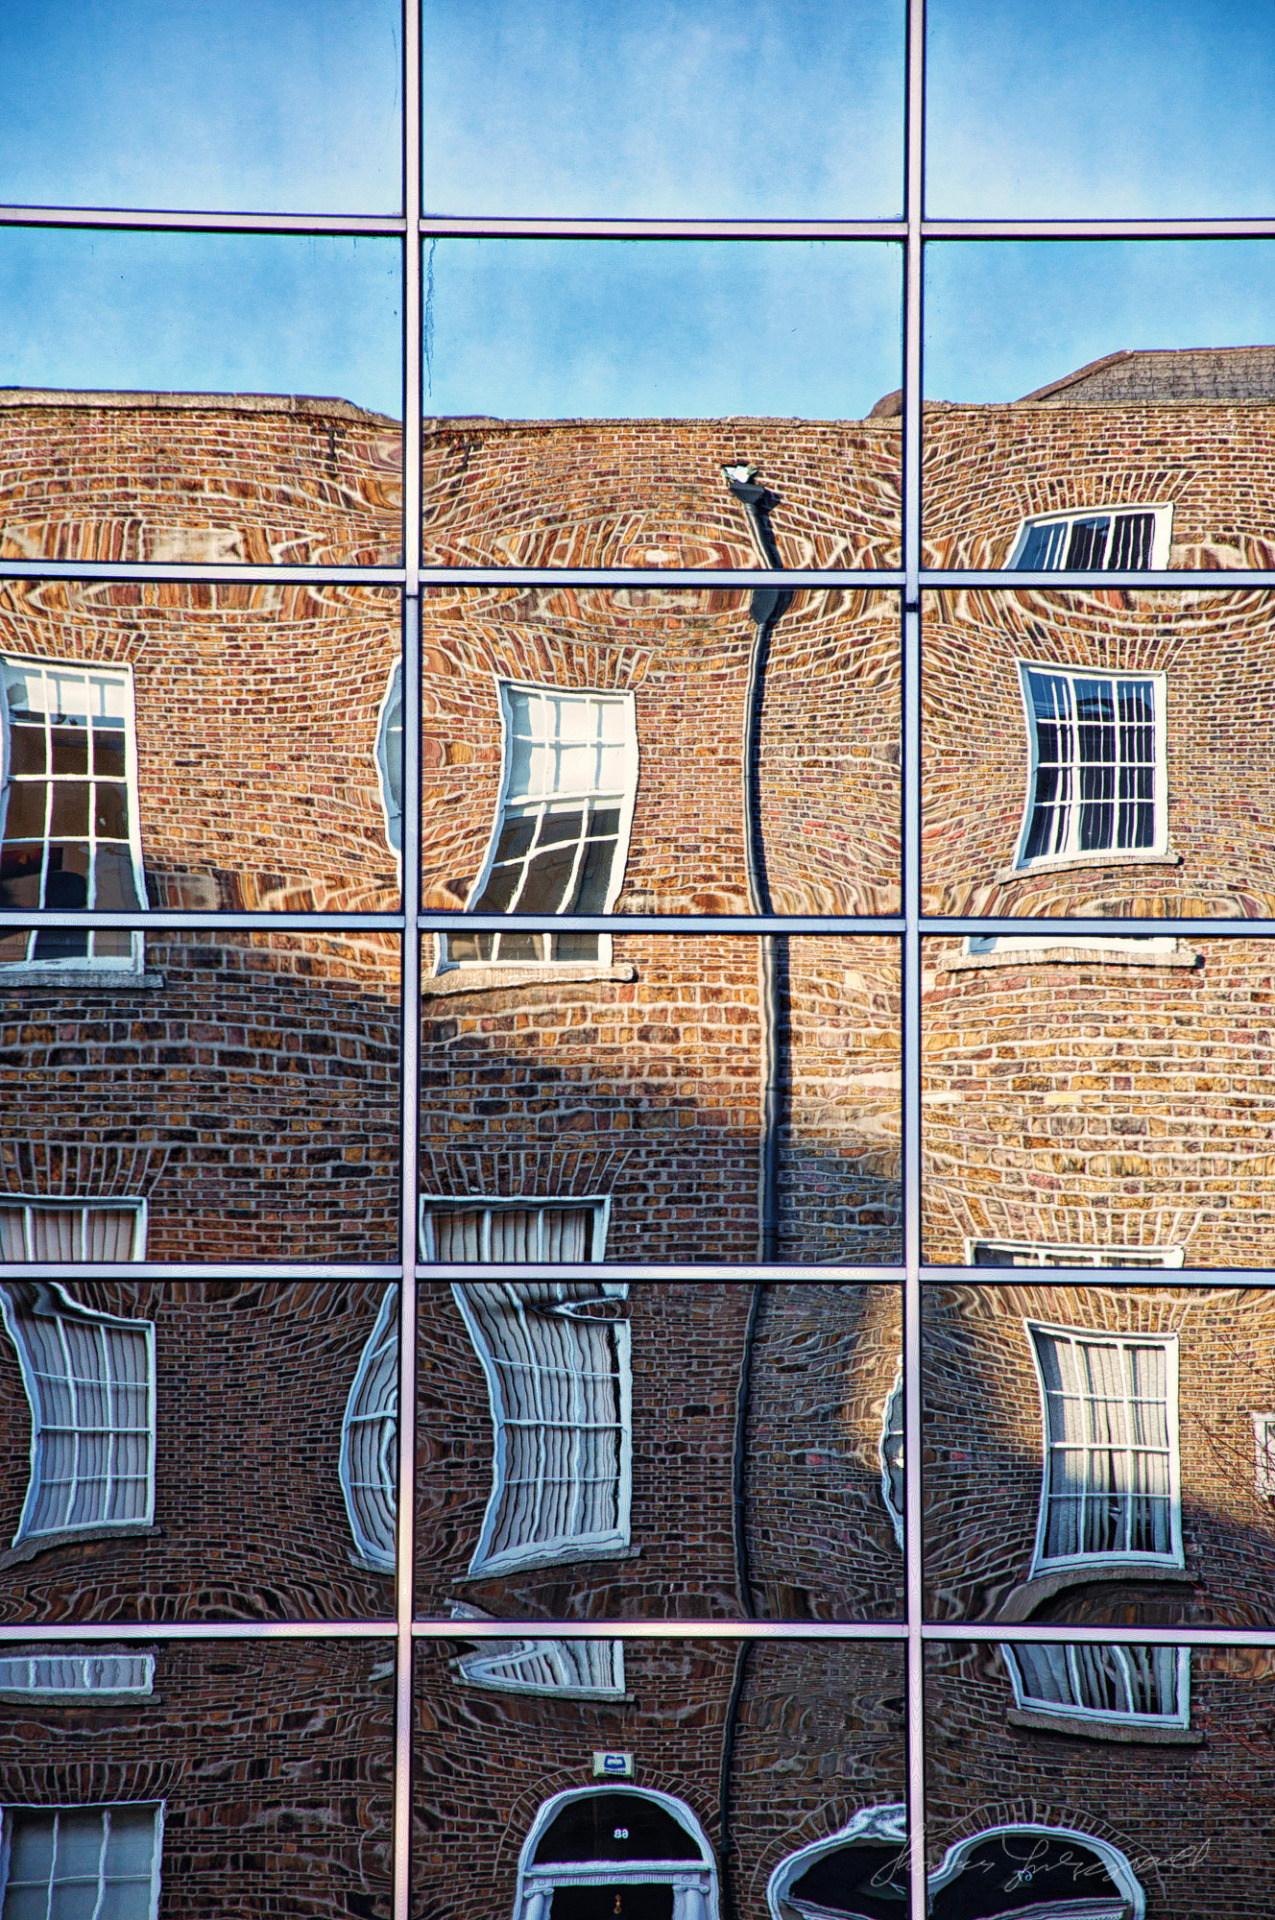 Reflections of Baggot Street